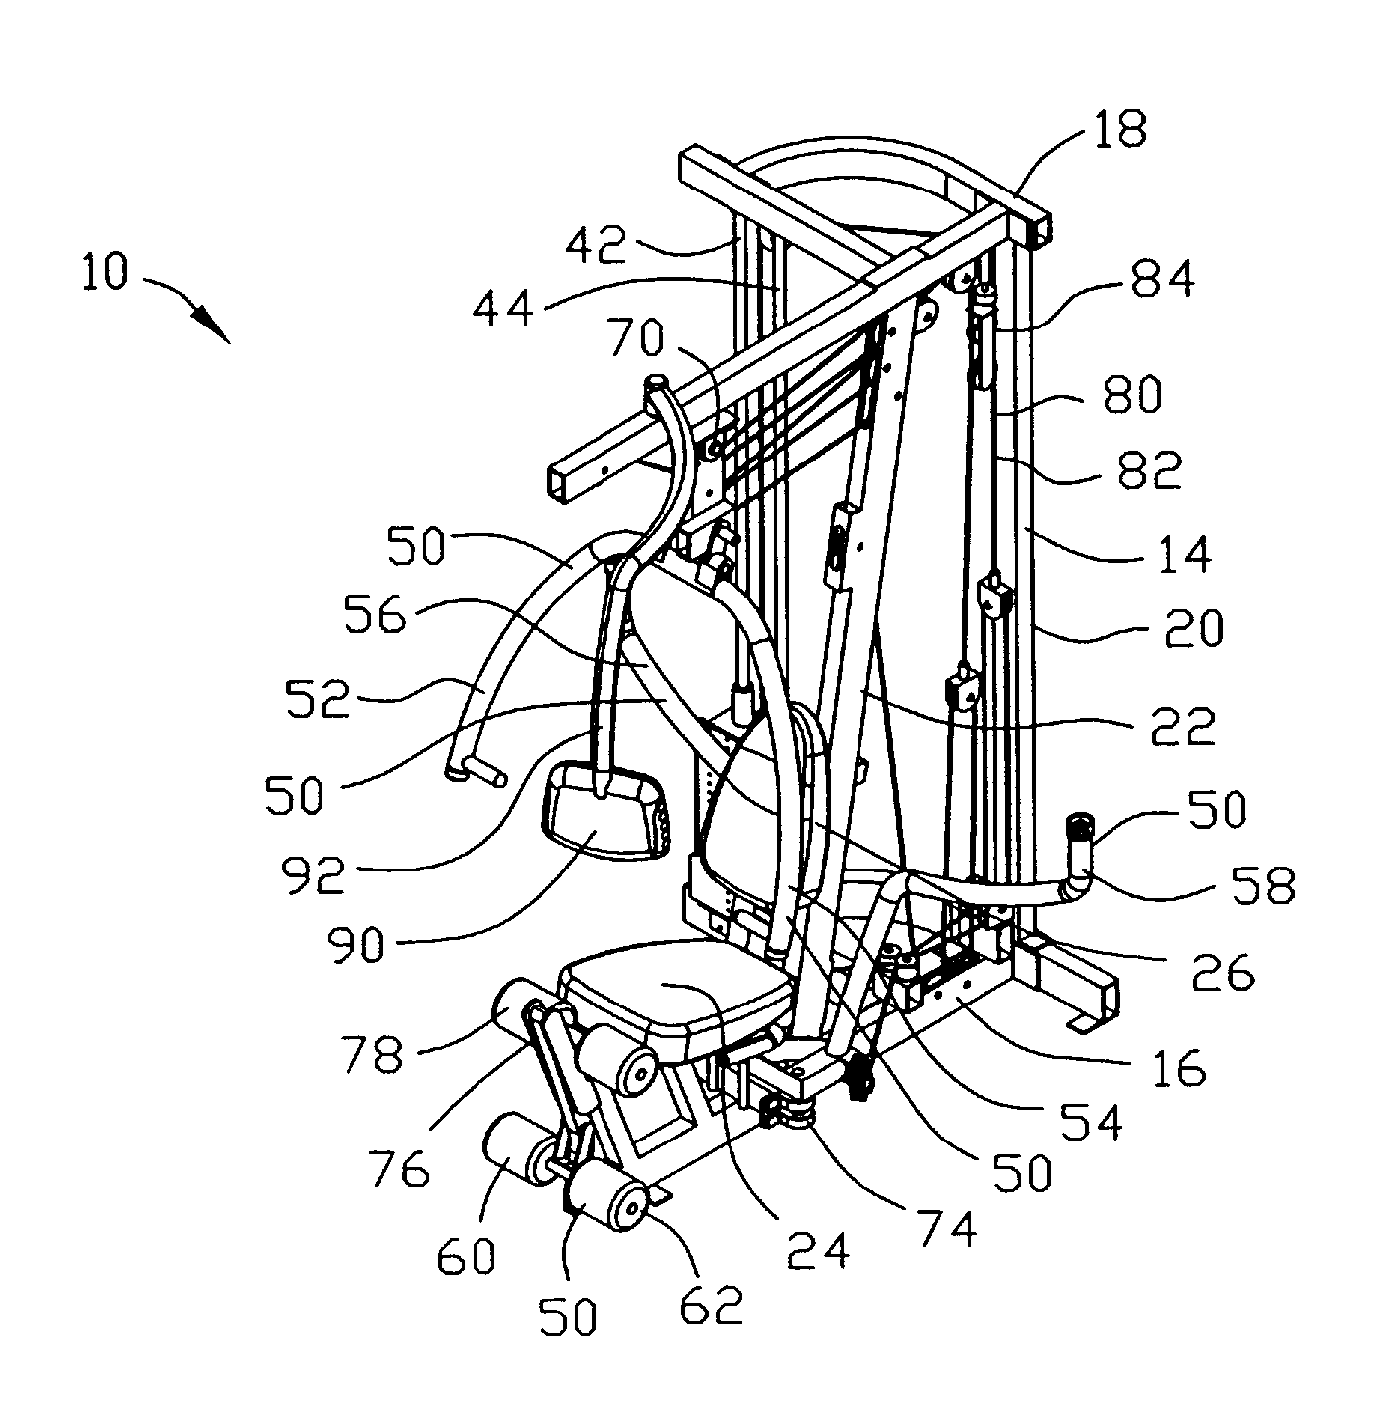 patent us8197389 exercising apparatus patents Stair Lift Diagram patent drawing